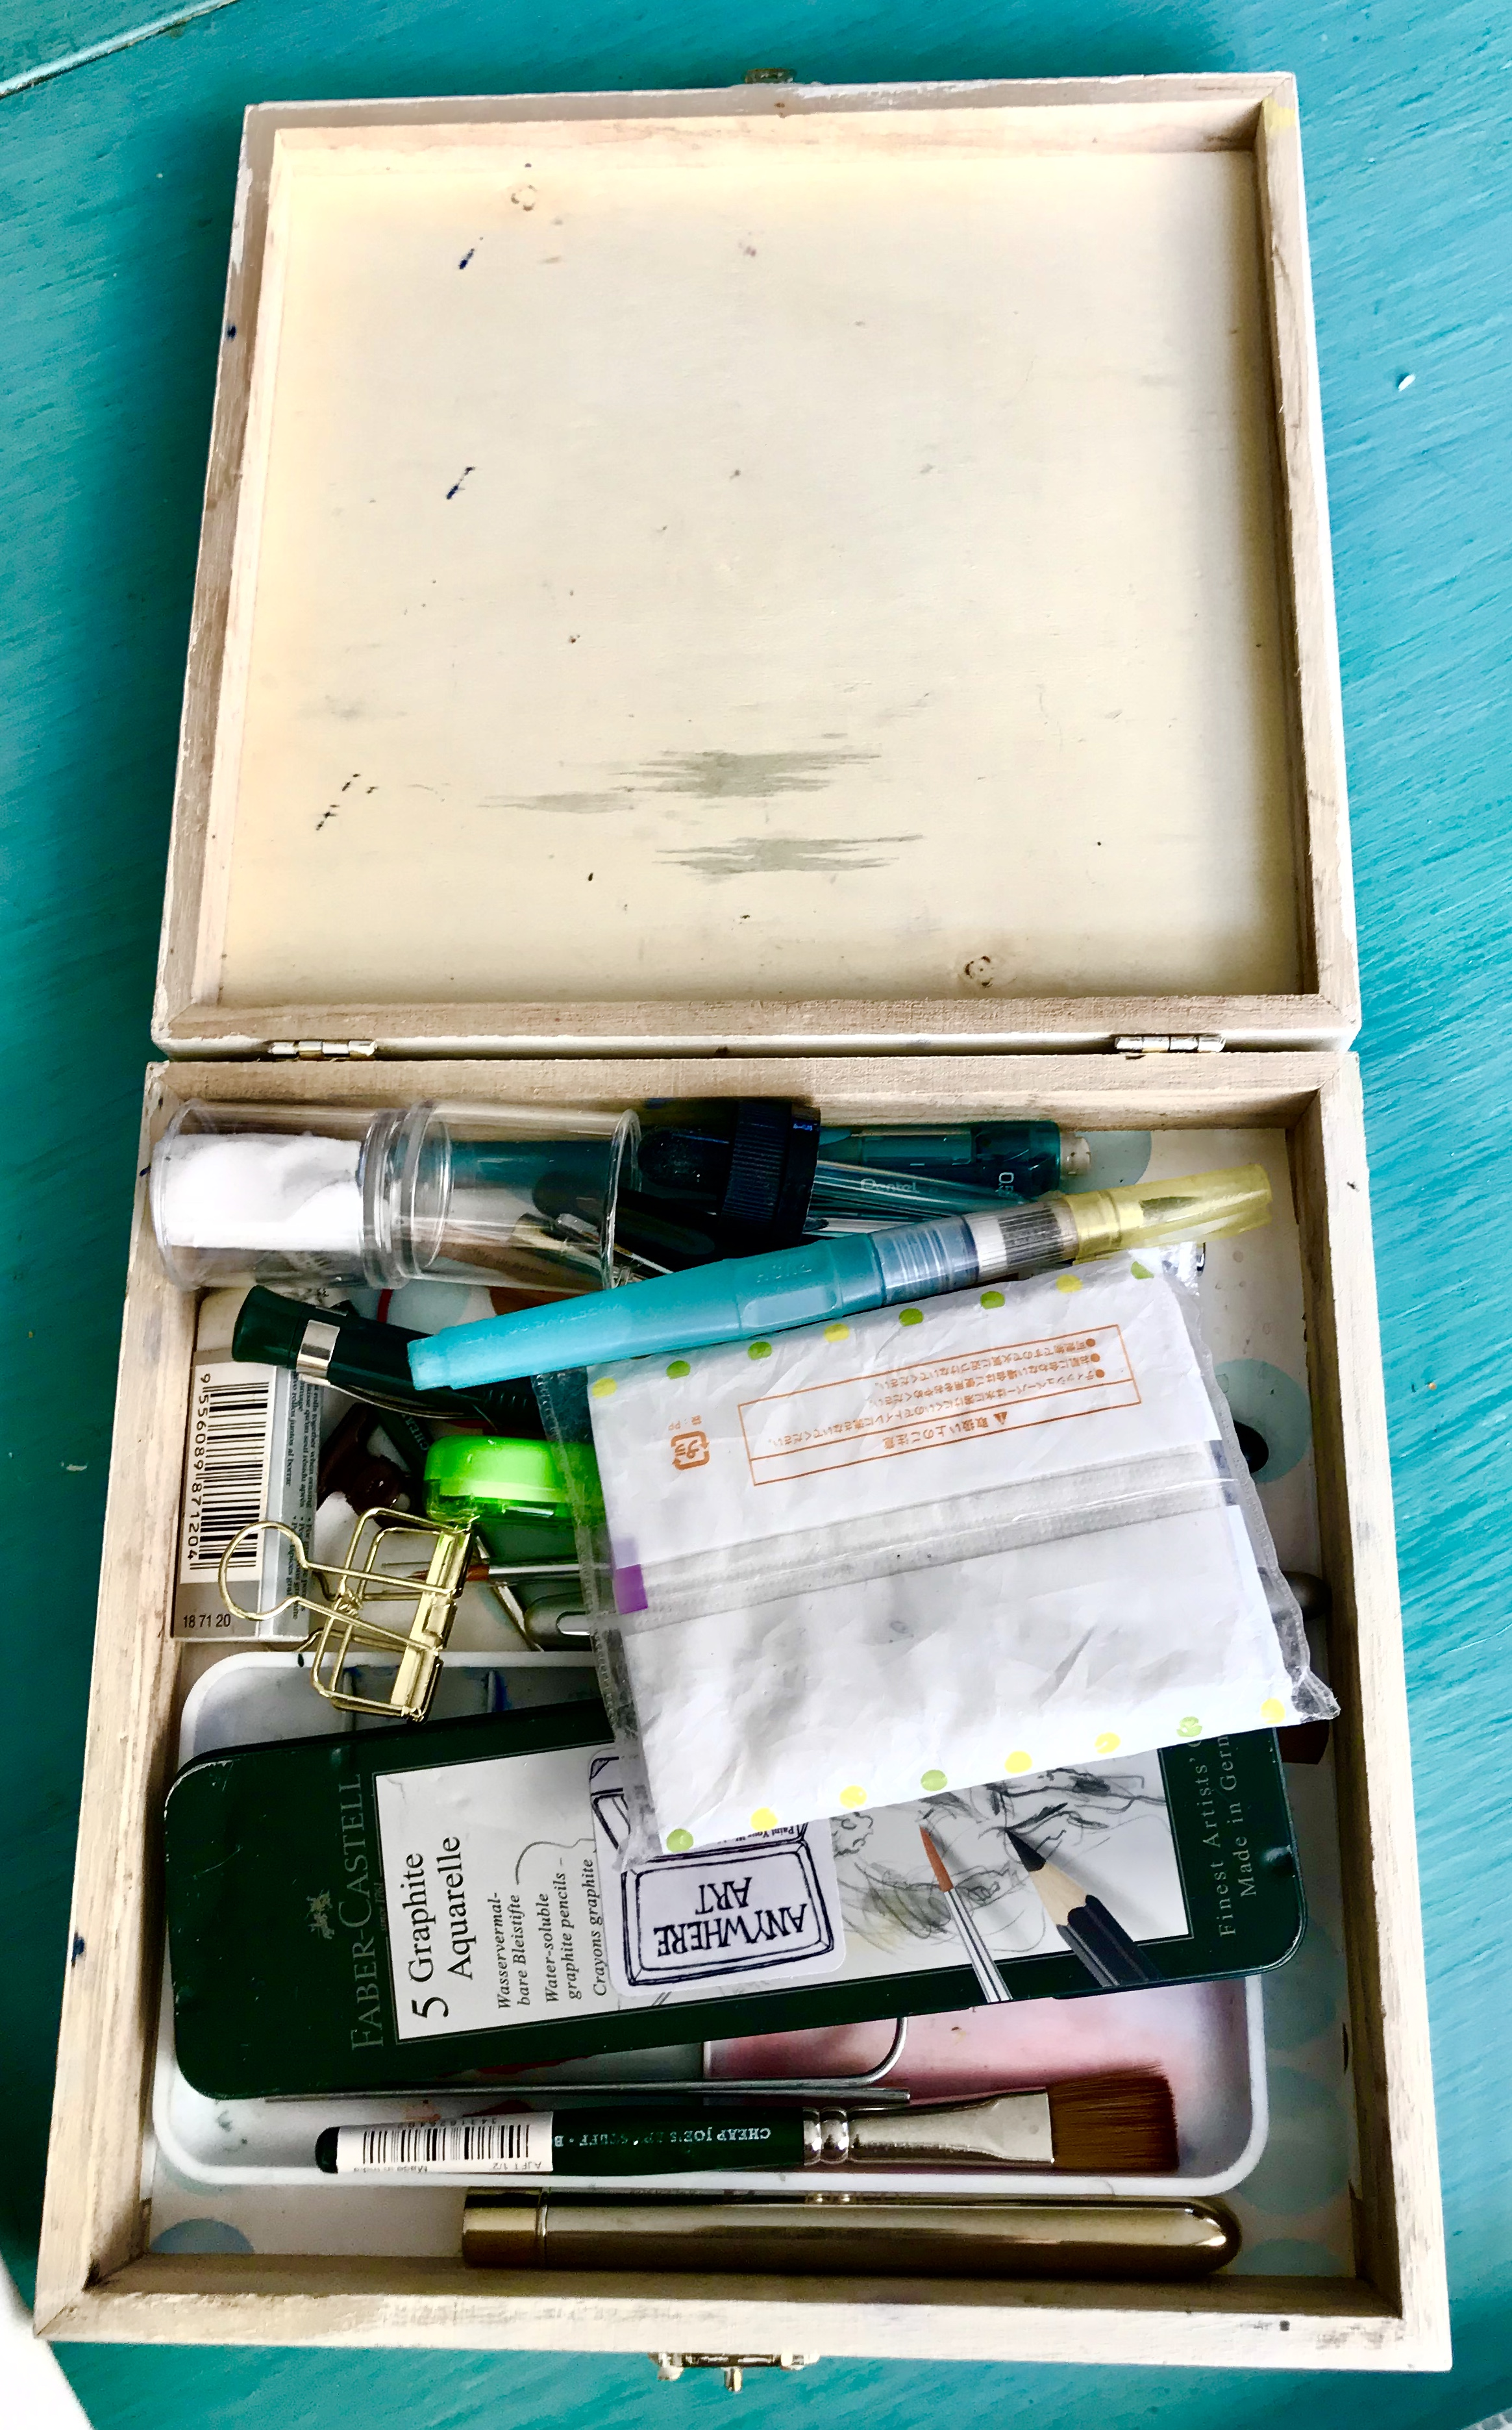 Inside the travel box